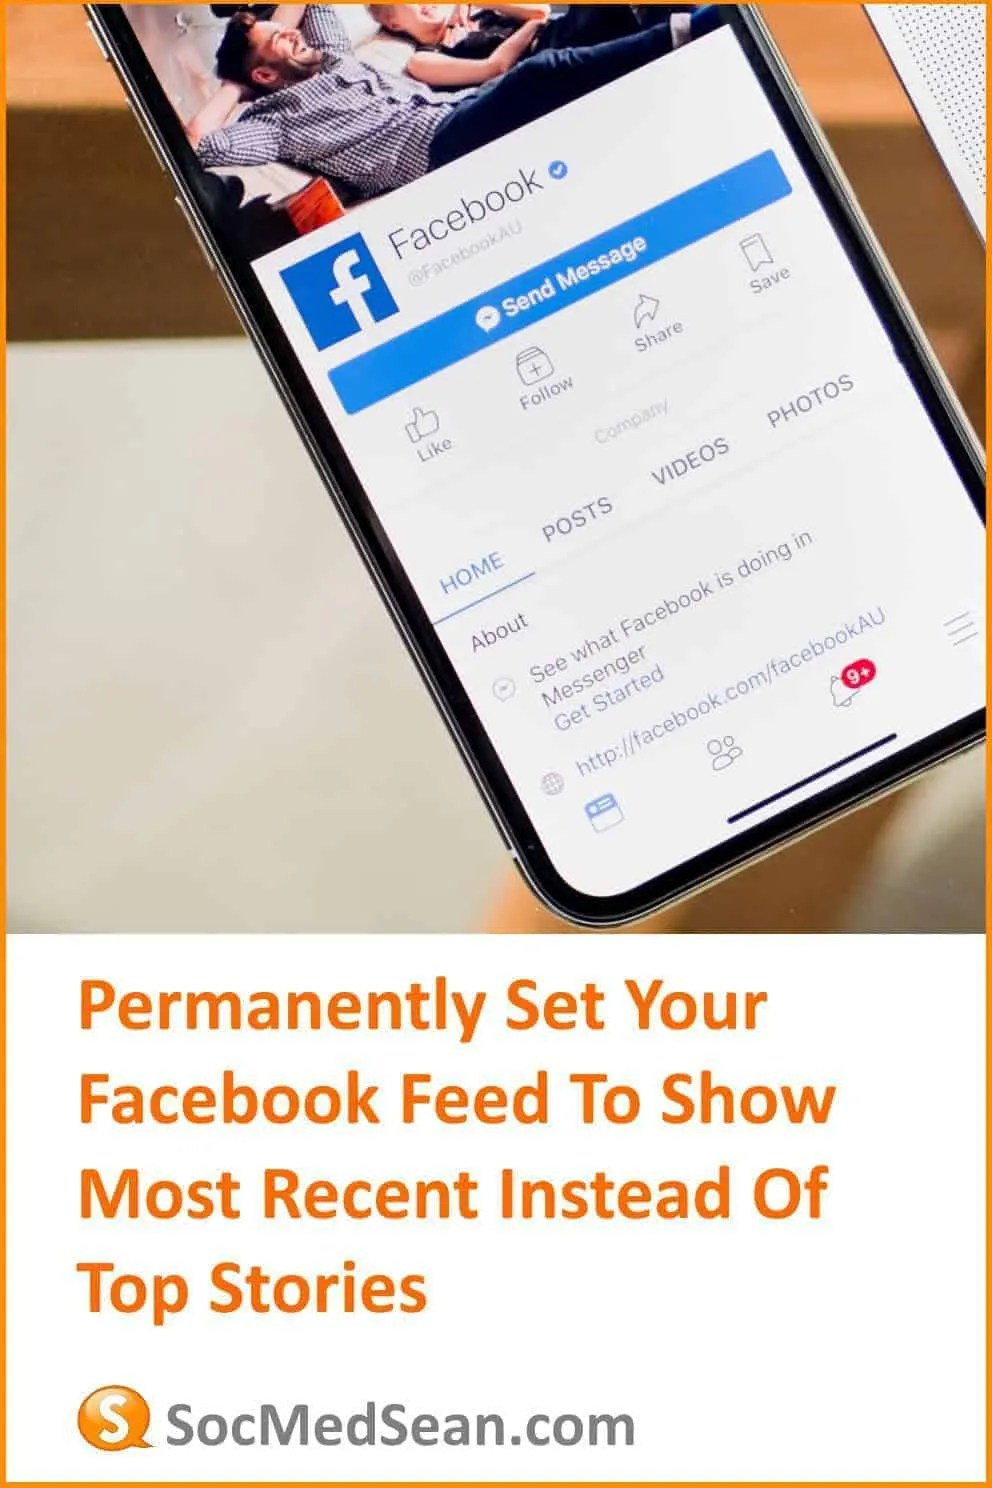 Tips on how to set your Facebook feed to show most recent instead of top stories